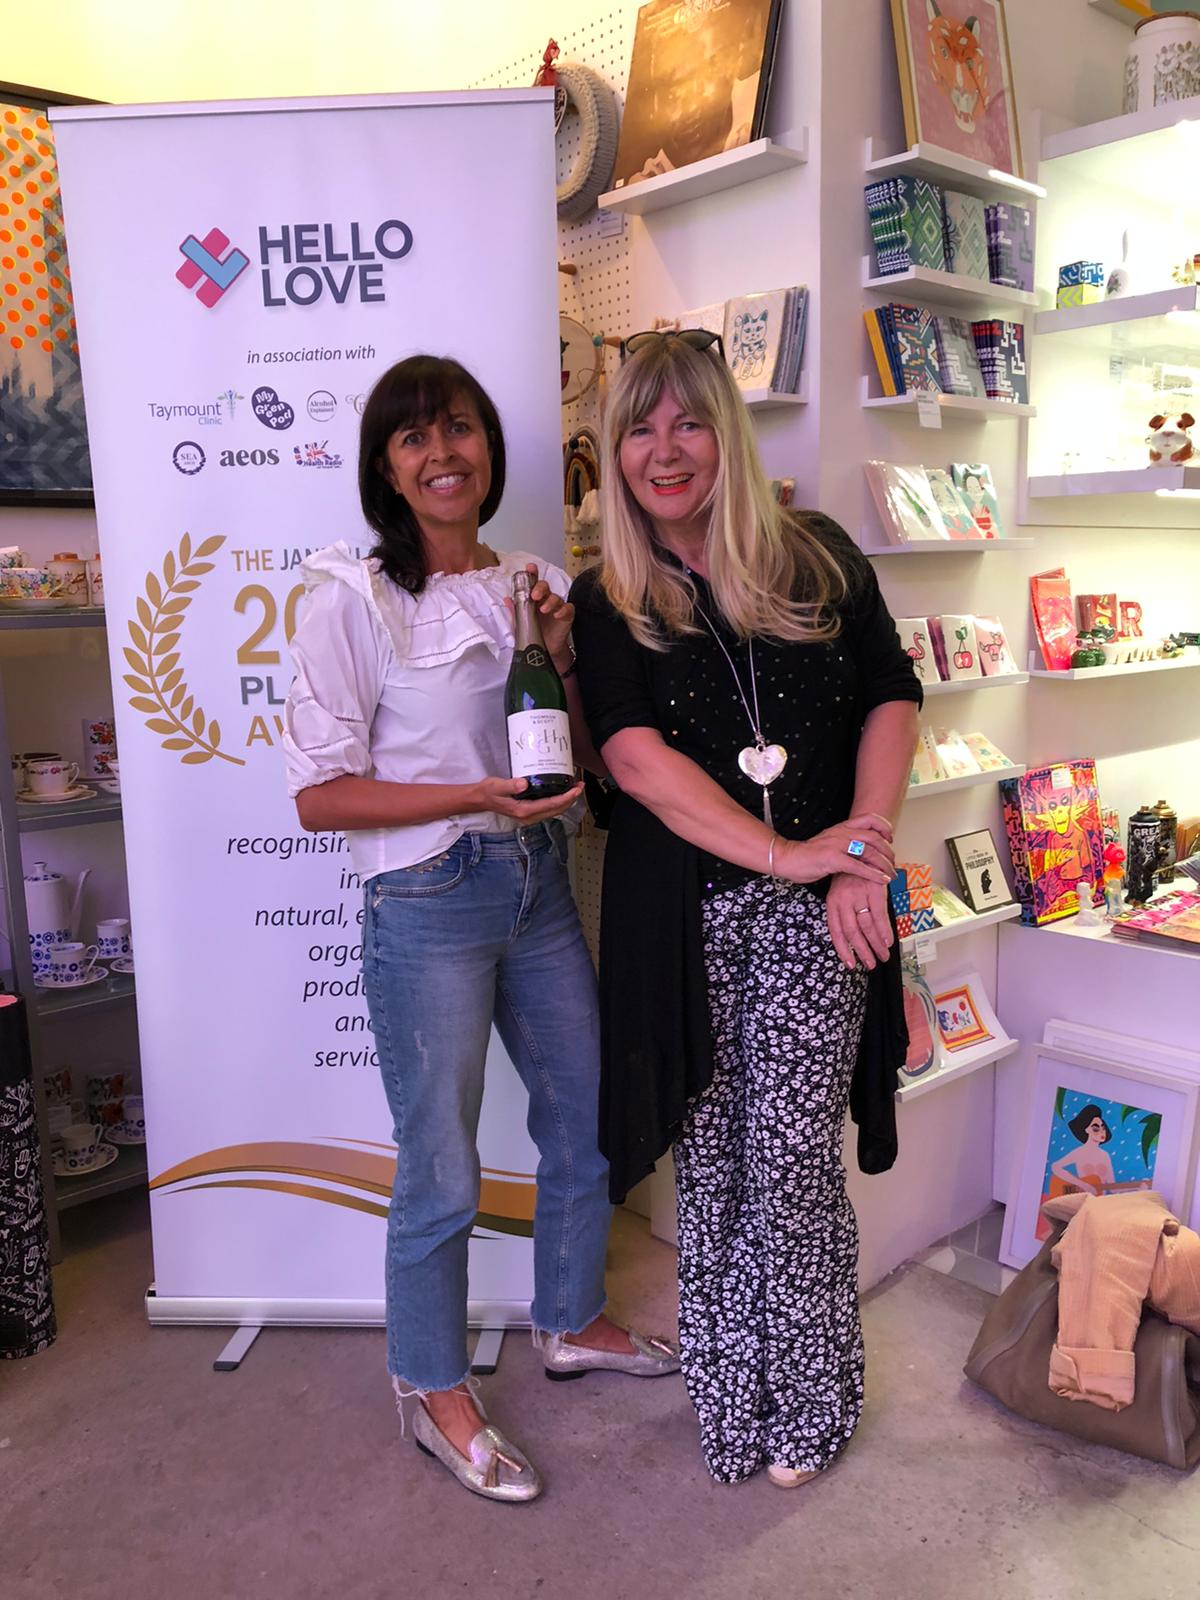 We celebrated a special morning today, toasting with Thomson & Scott Noughty Alcohol-Free and Janey Lee Grace at her Platinum Janey Loves Awards at the Hello Love Studio in Bloomsbury.